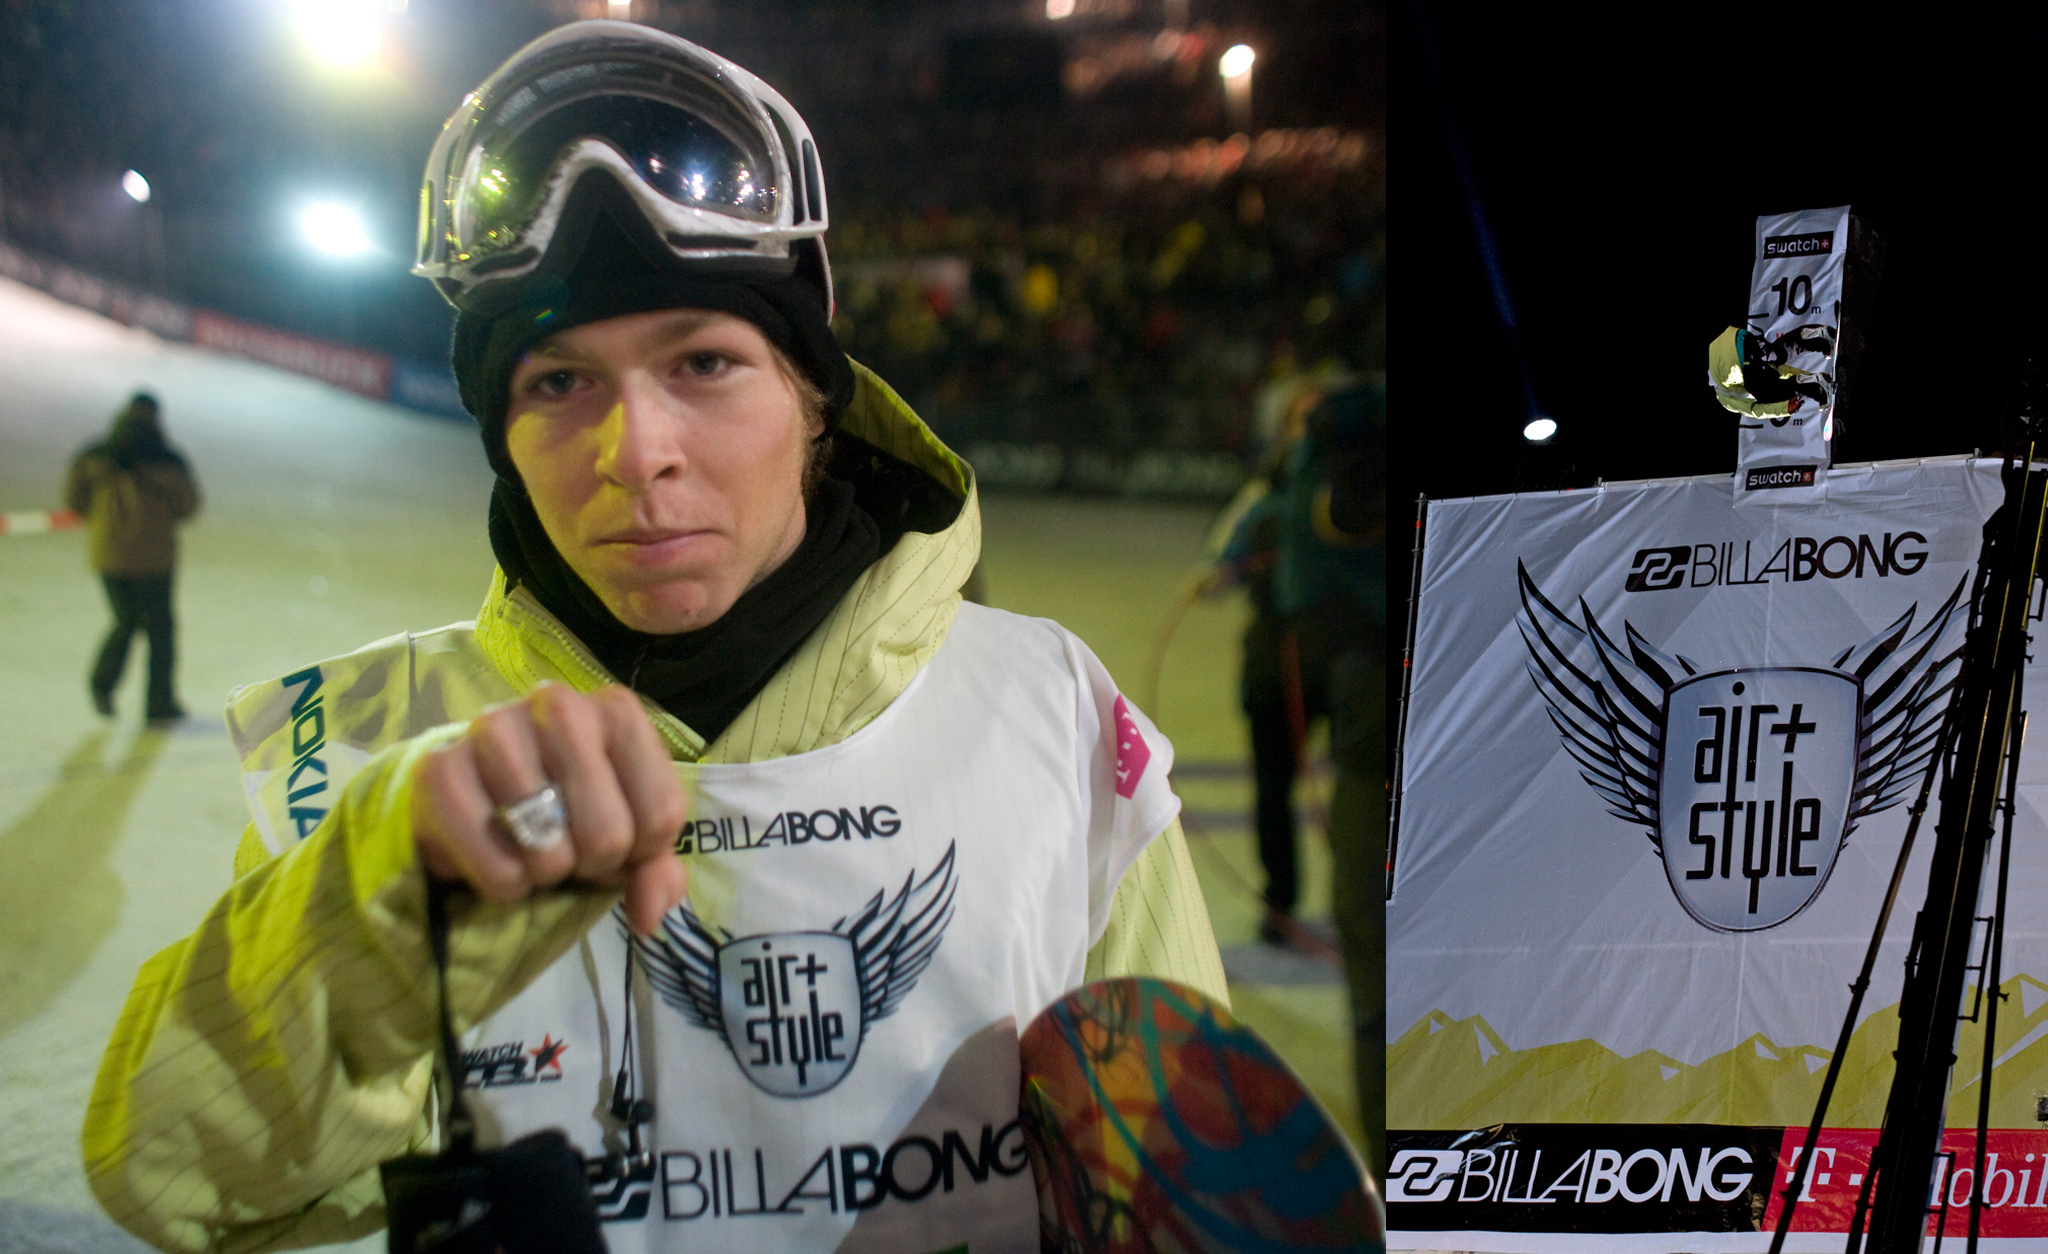 February 2008, Innsbruckbr Winner: Kevin Pearce